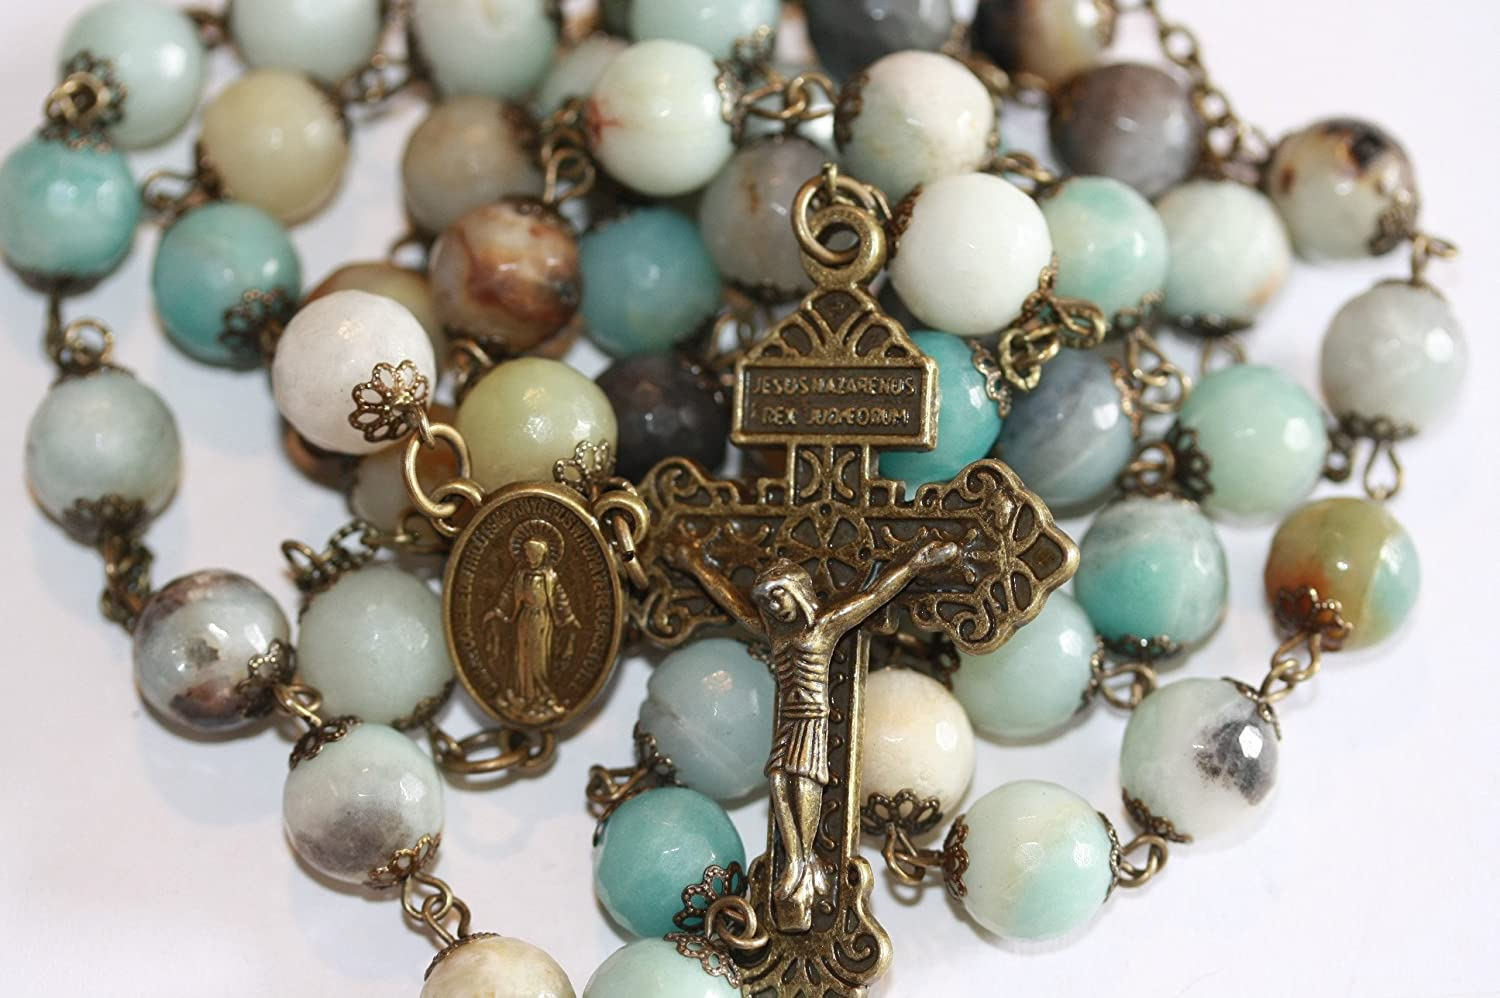 Large Amazonite and Bronze 10mm 5 Decade Natural Stone Bead Rosary Made in Oklahoma with Pardon Crucifix Oklahoma Rosaries